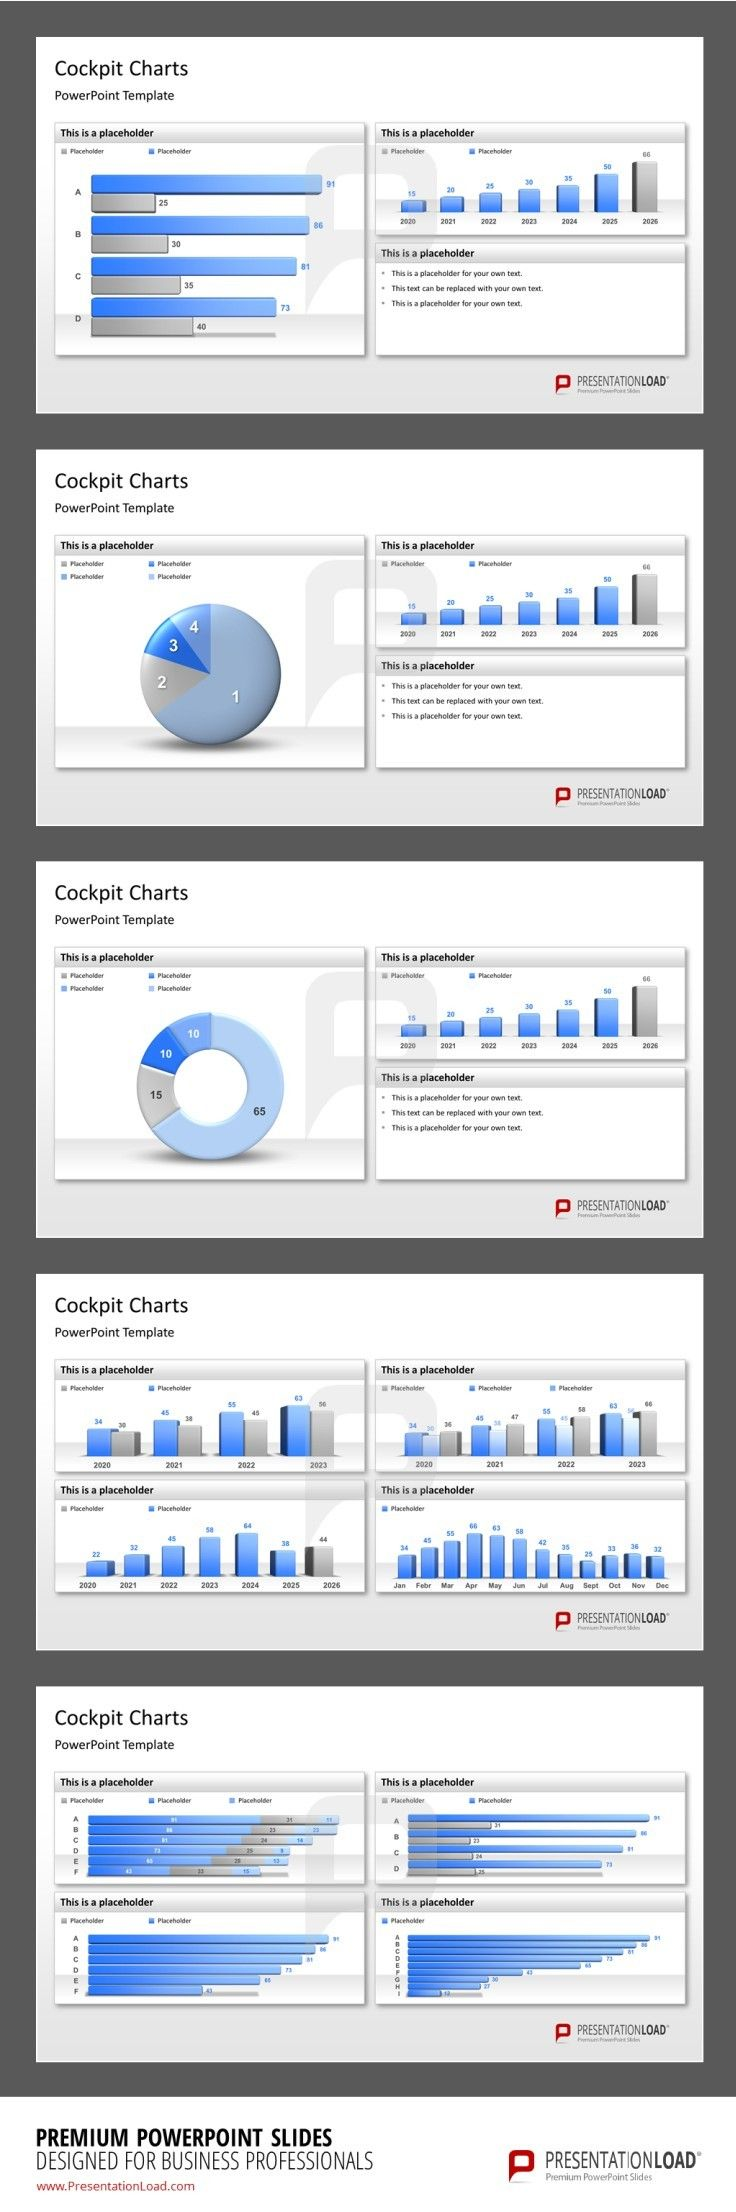 27 best business powerpoint templates images on pinterest present data and information attractively with powerpoint cockpit charts in clearly laid out powerpoint presentations alramifo Gallery